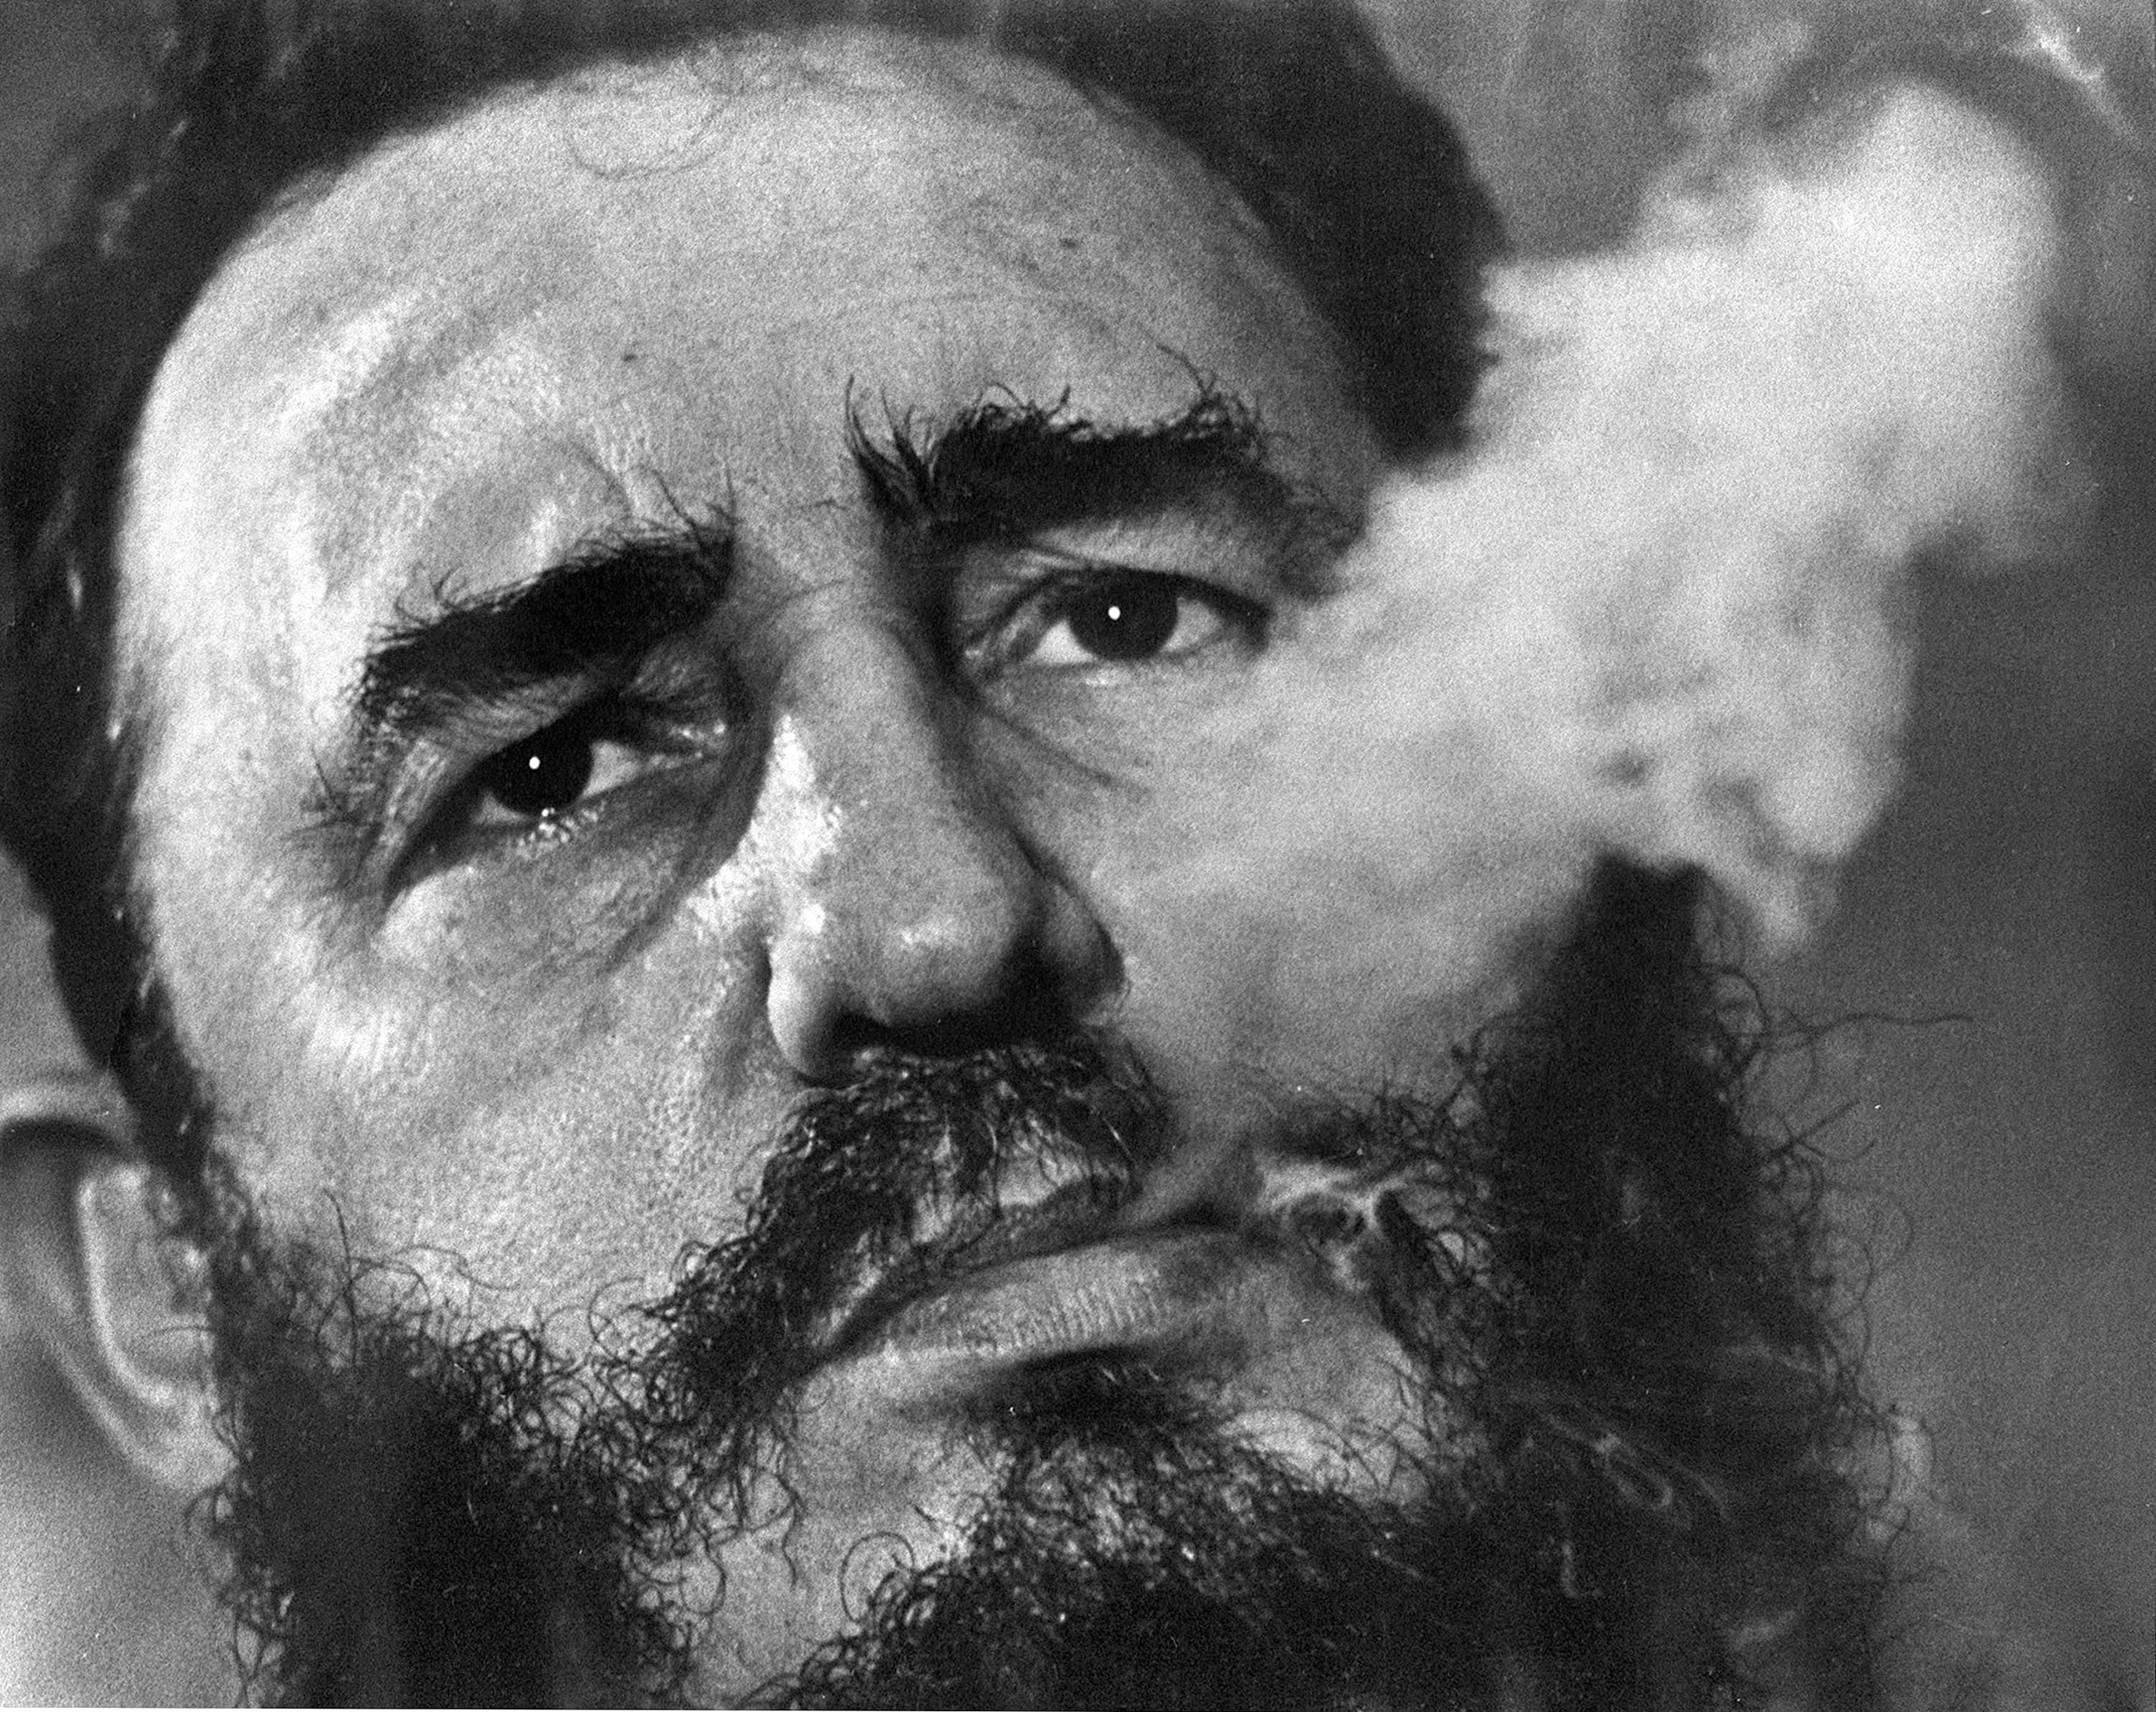 Fidel Castro exhales cigar smoke during an interview at his presidential palace in Havana, March 1985.